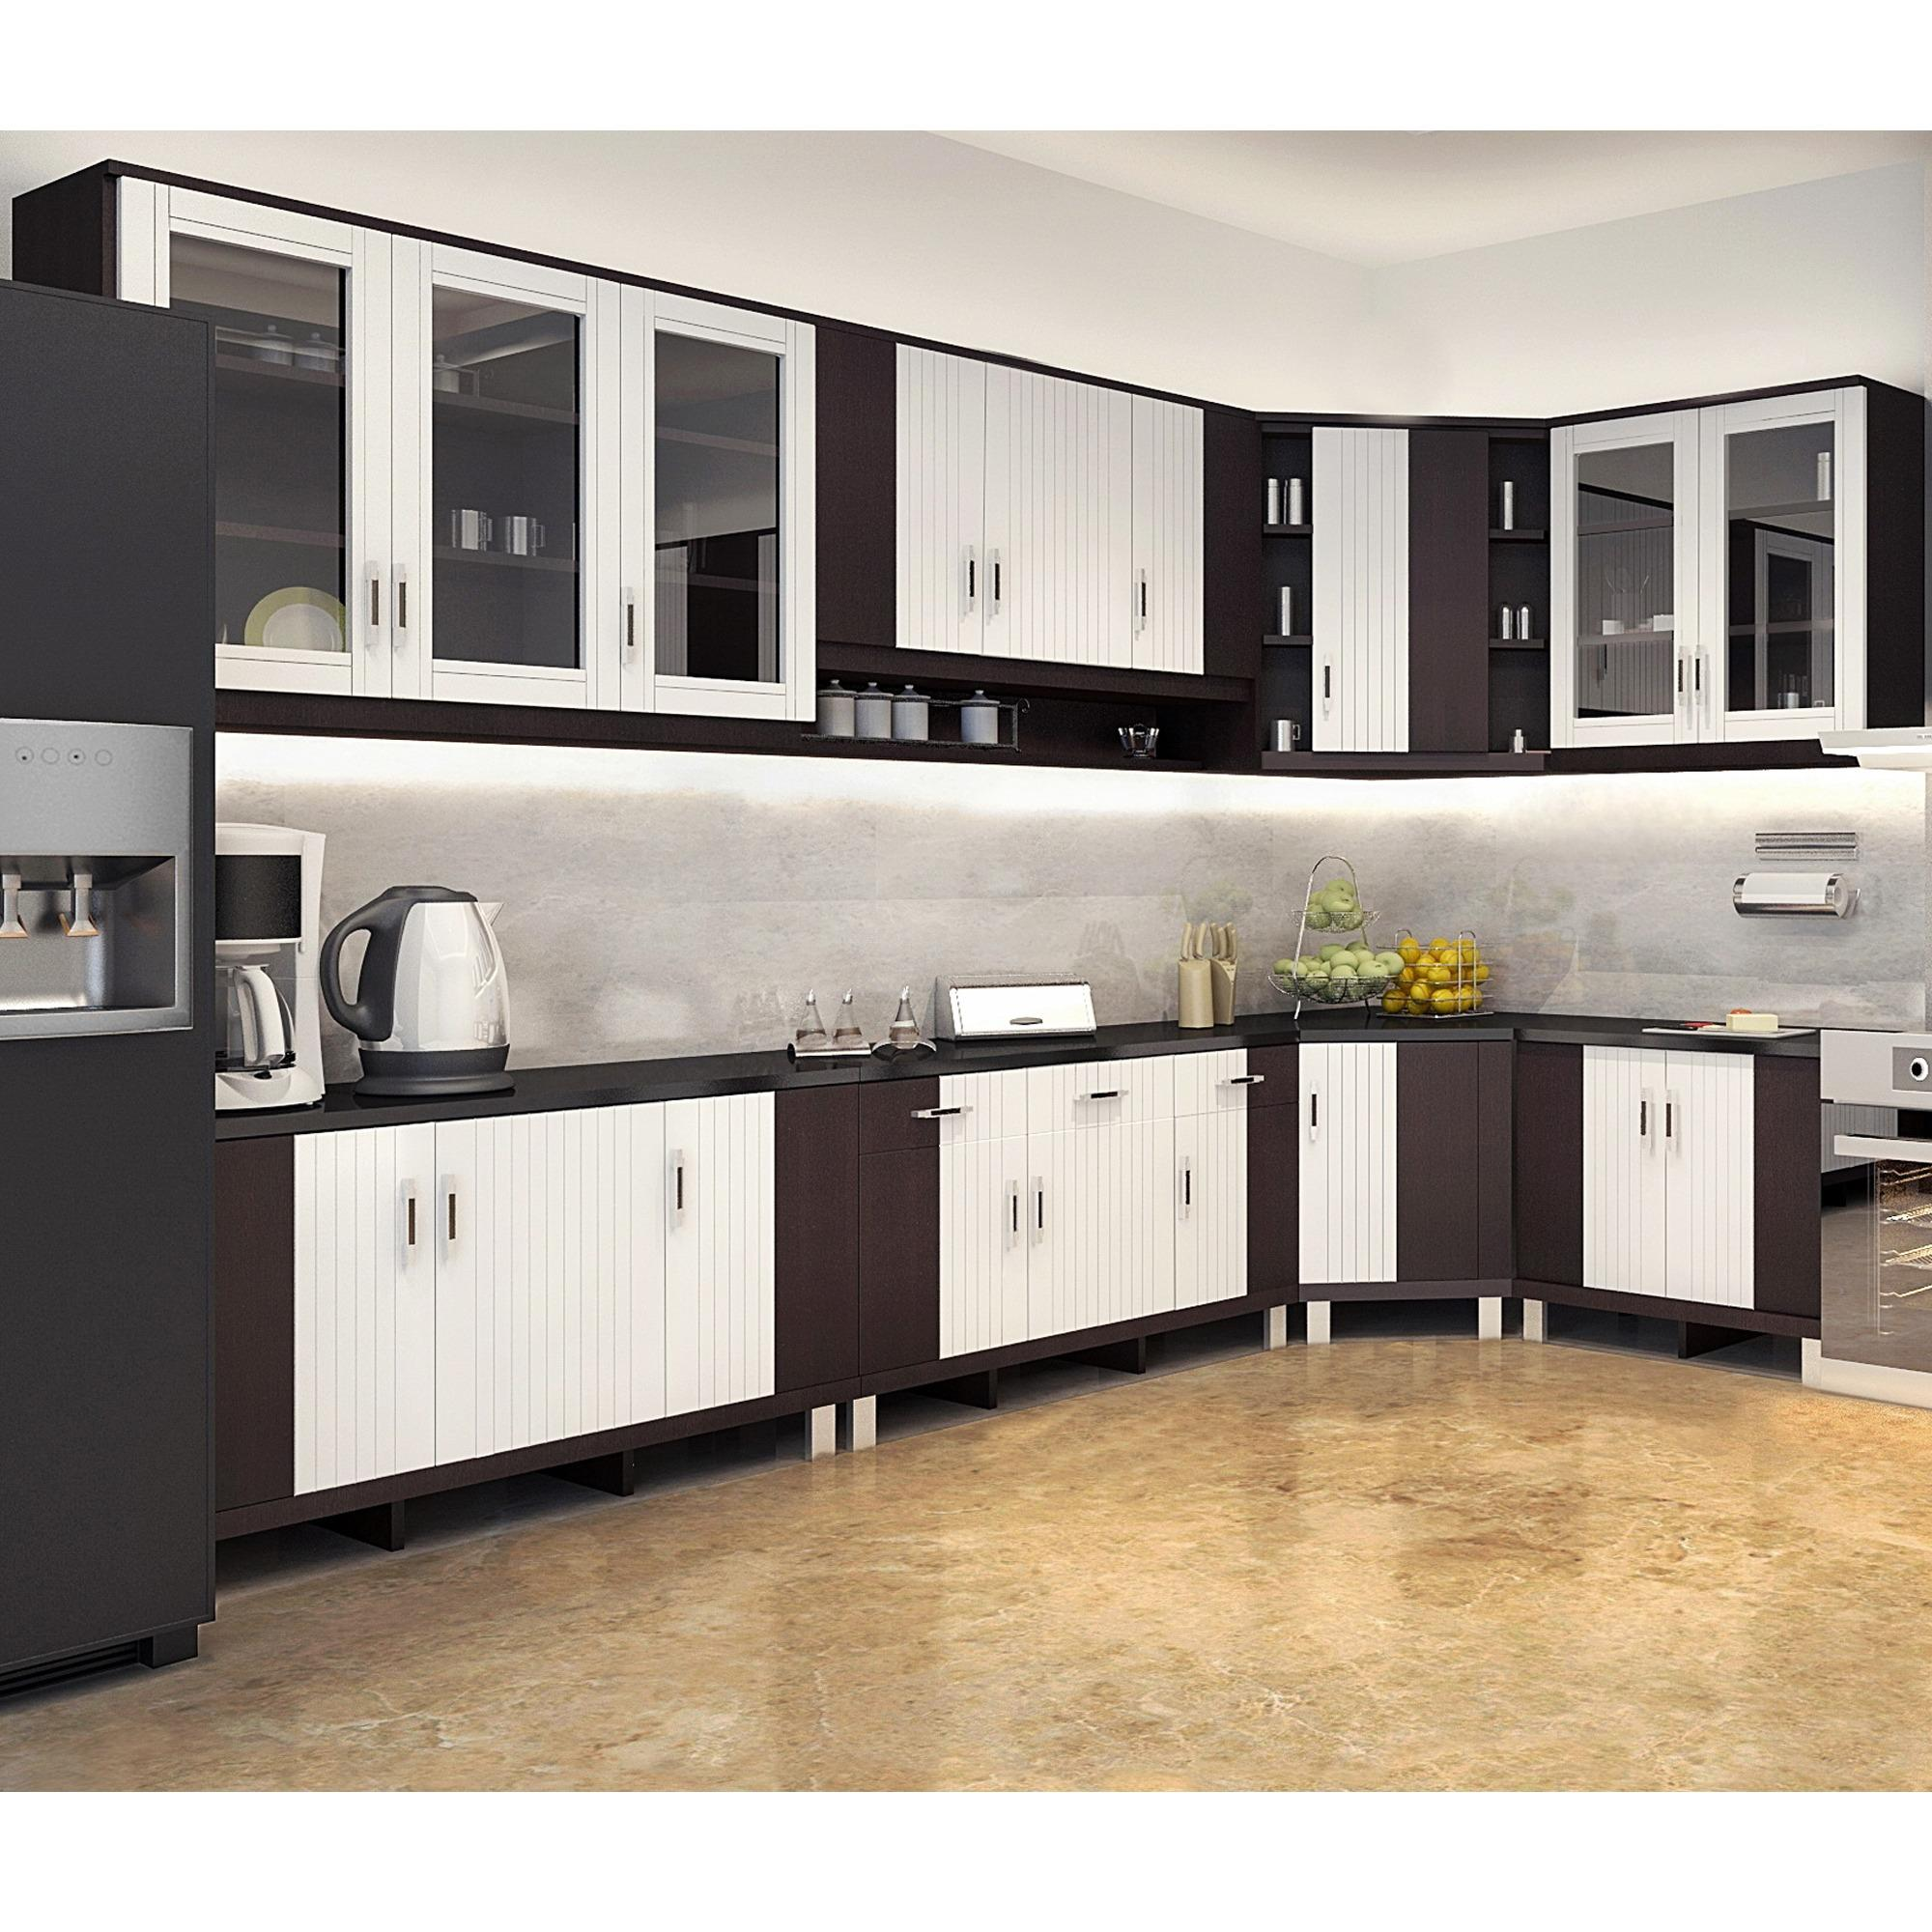 Kitchen Set L Anata By Furniture Minimalis.